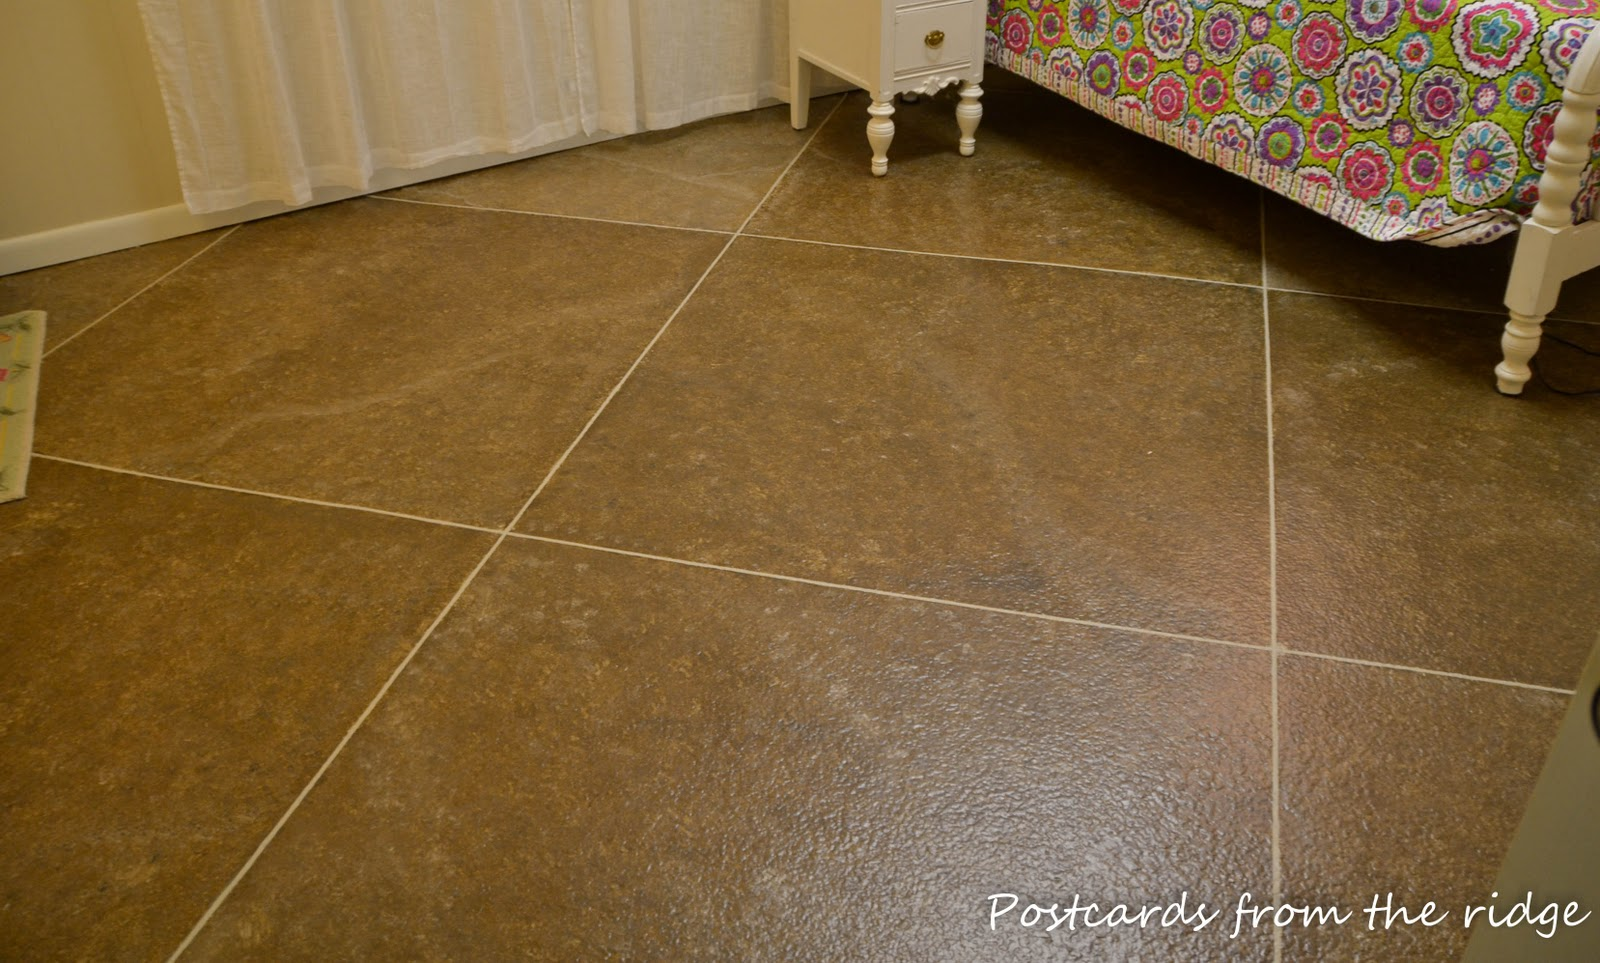 Diy faux painted tile floor postcards from the ridge dailygadgetfo Images